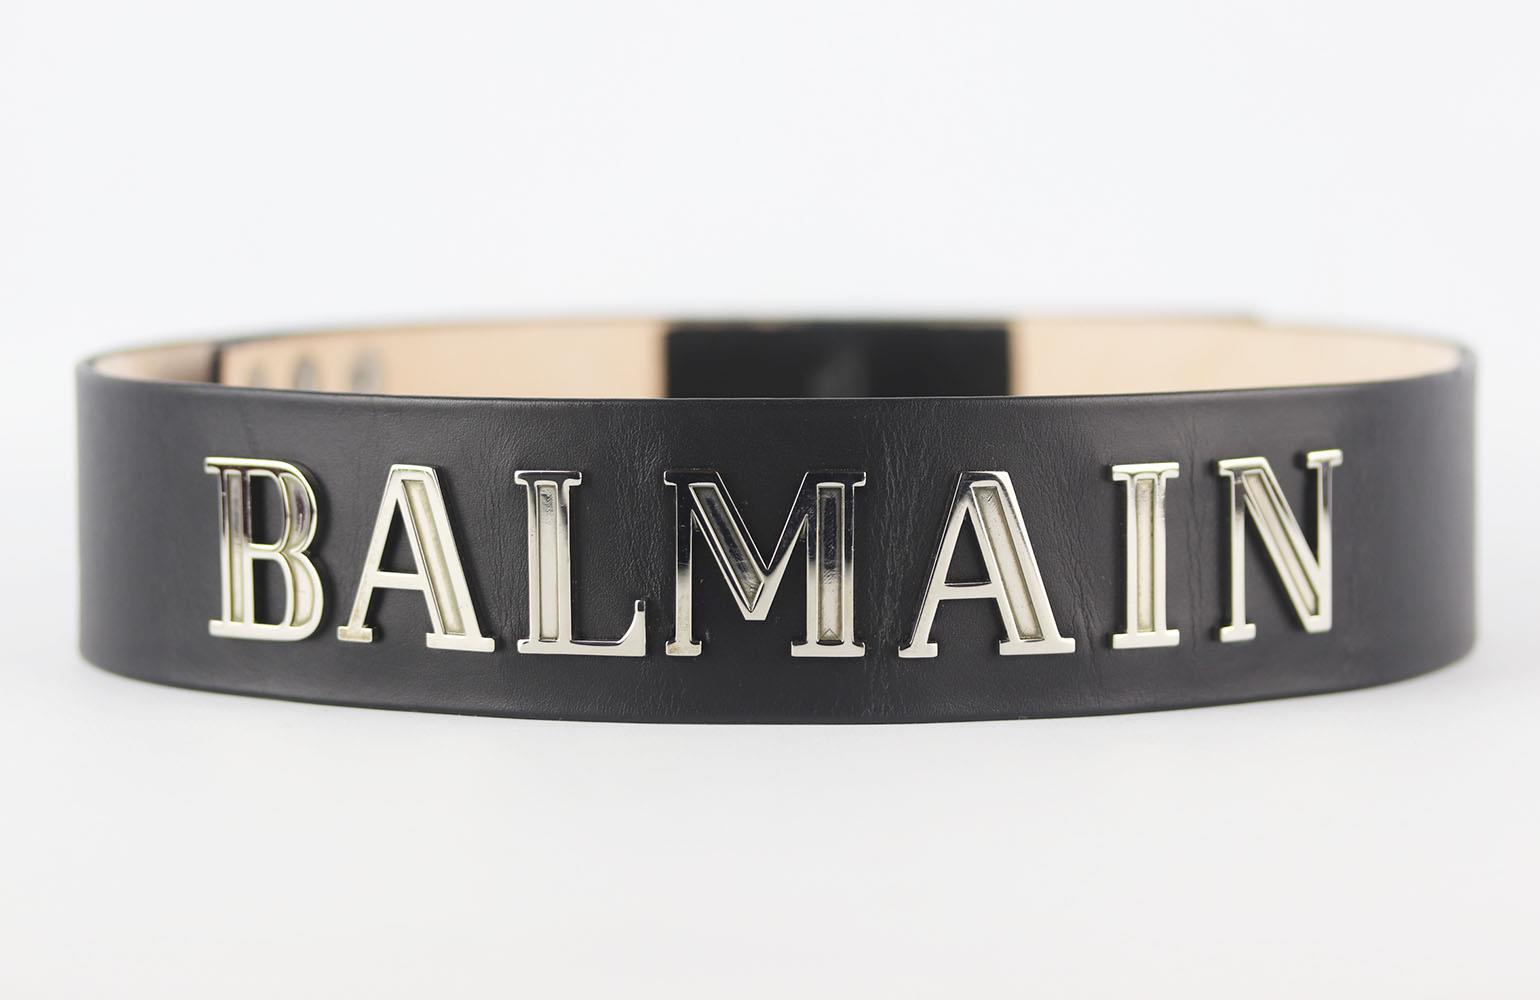 BALMAIN LOGO EMBELLISHED LEATHER WAIST BELT FR 40 UK 12